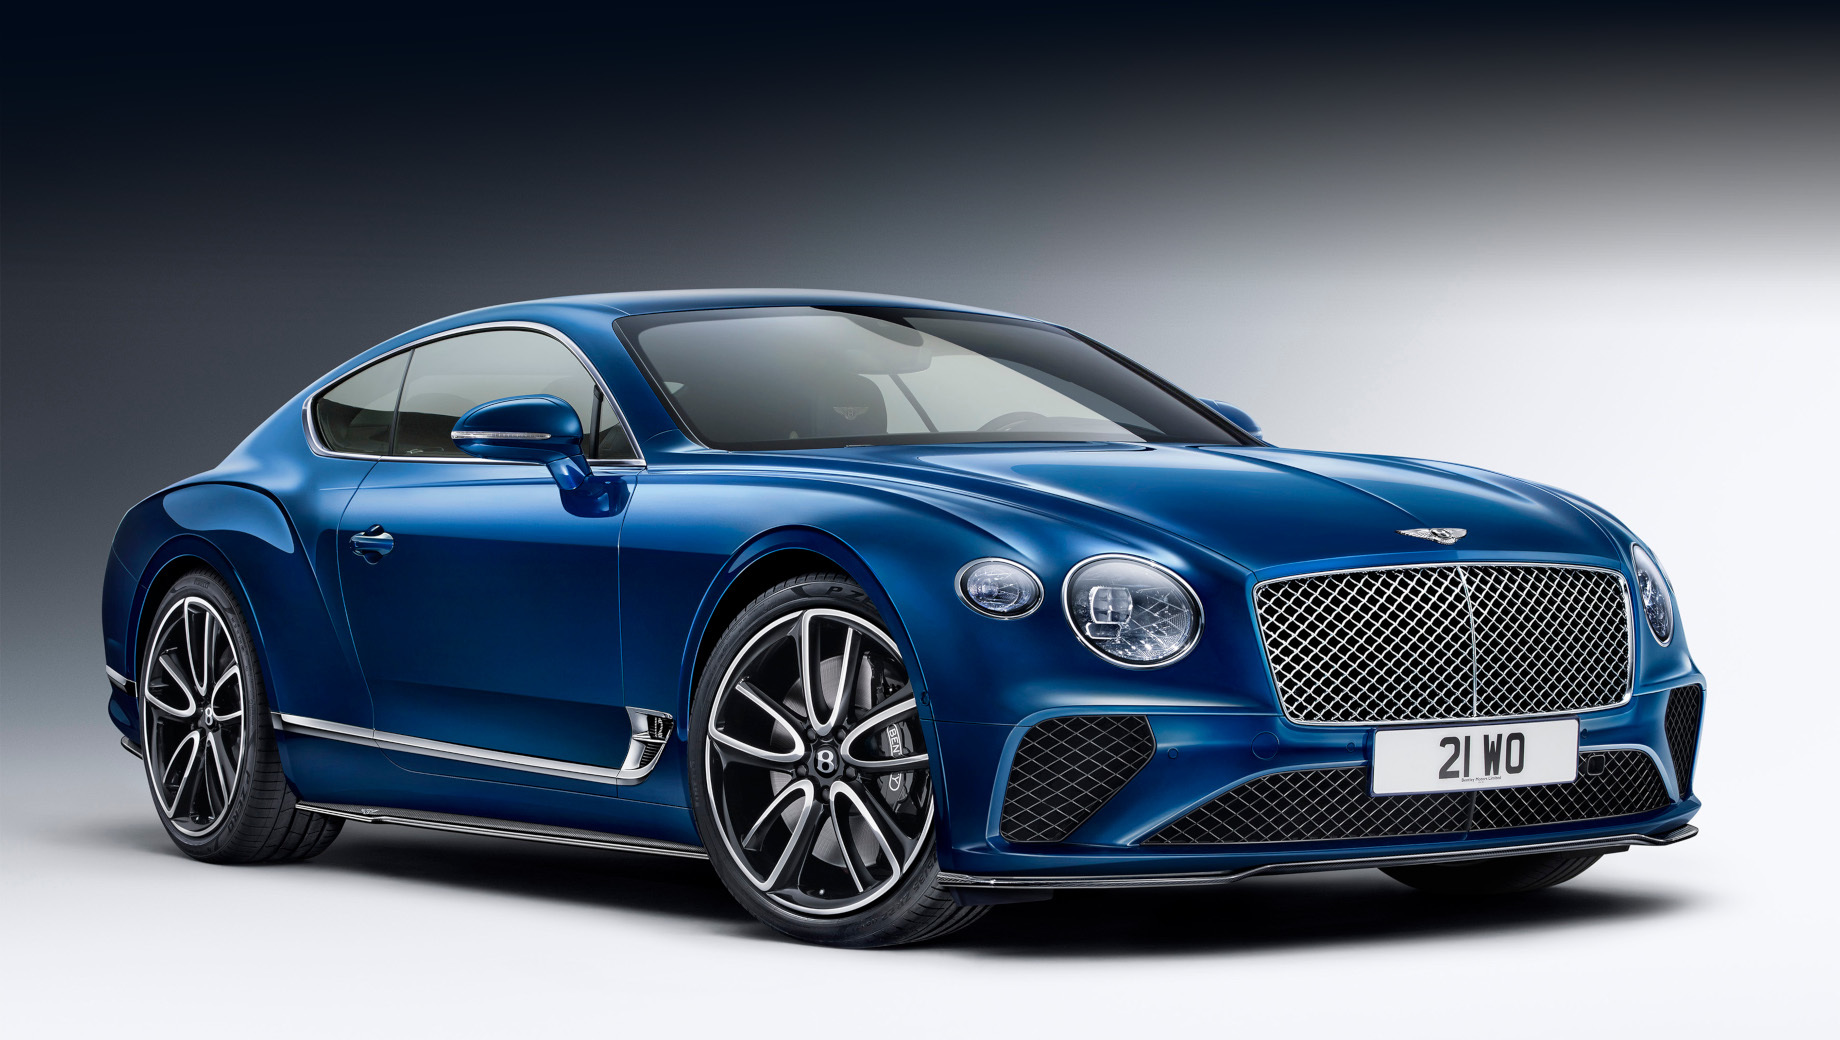 Пакет Bentley Styling объединил дизайн и аэродинамику